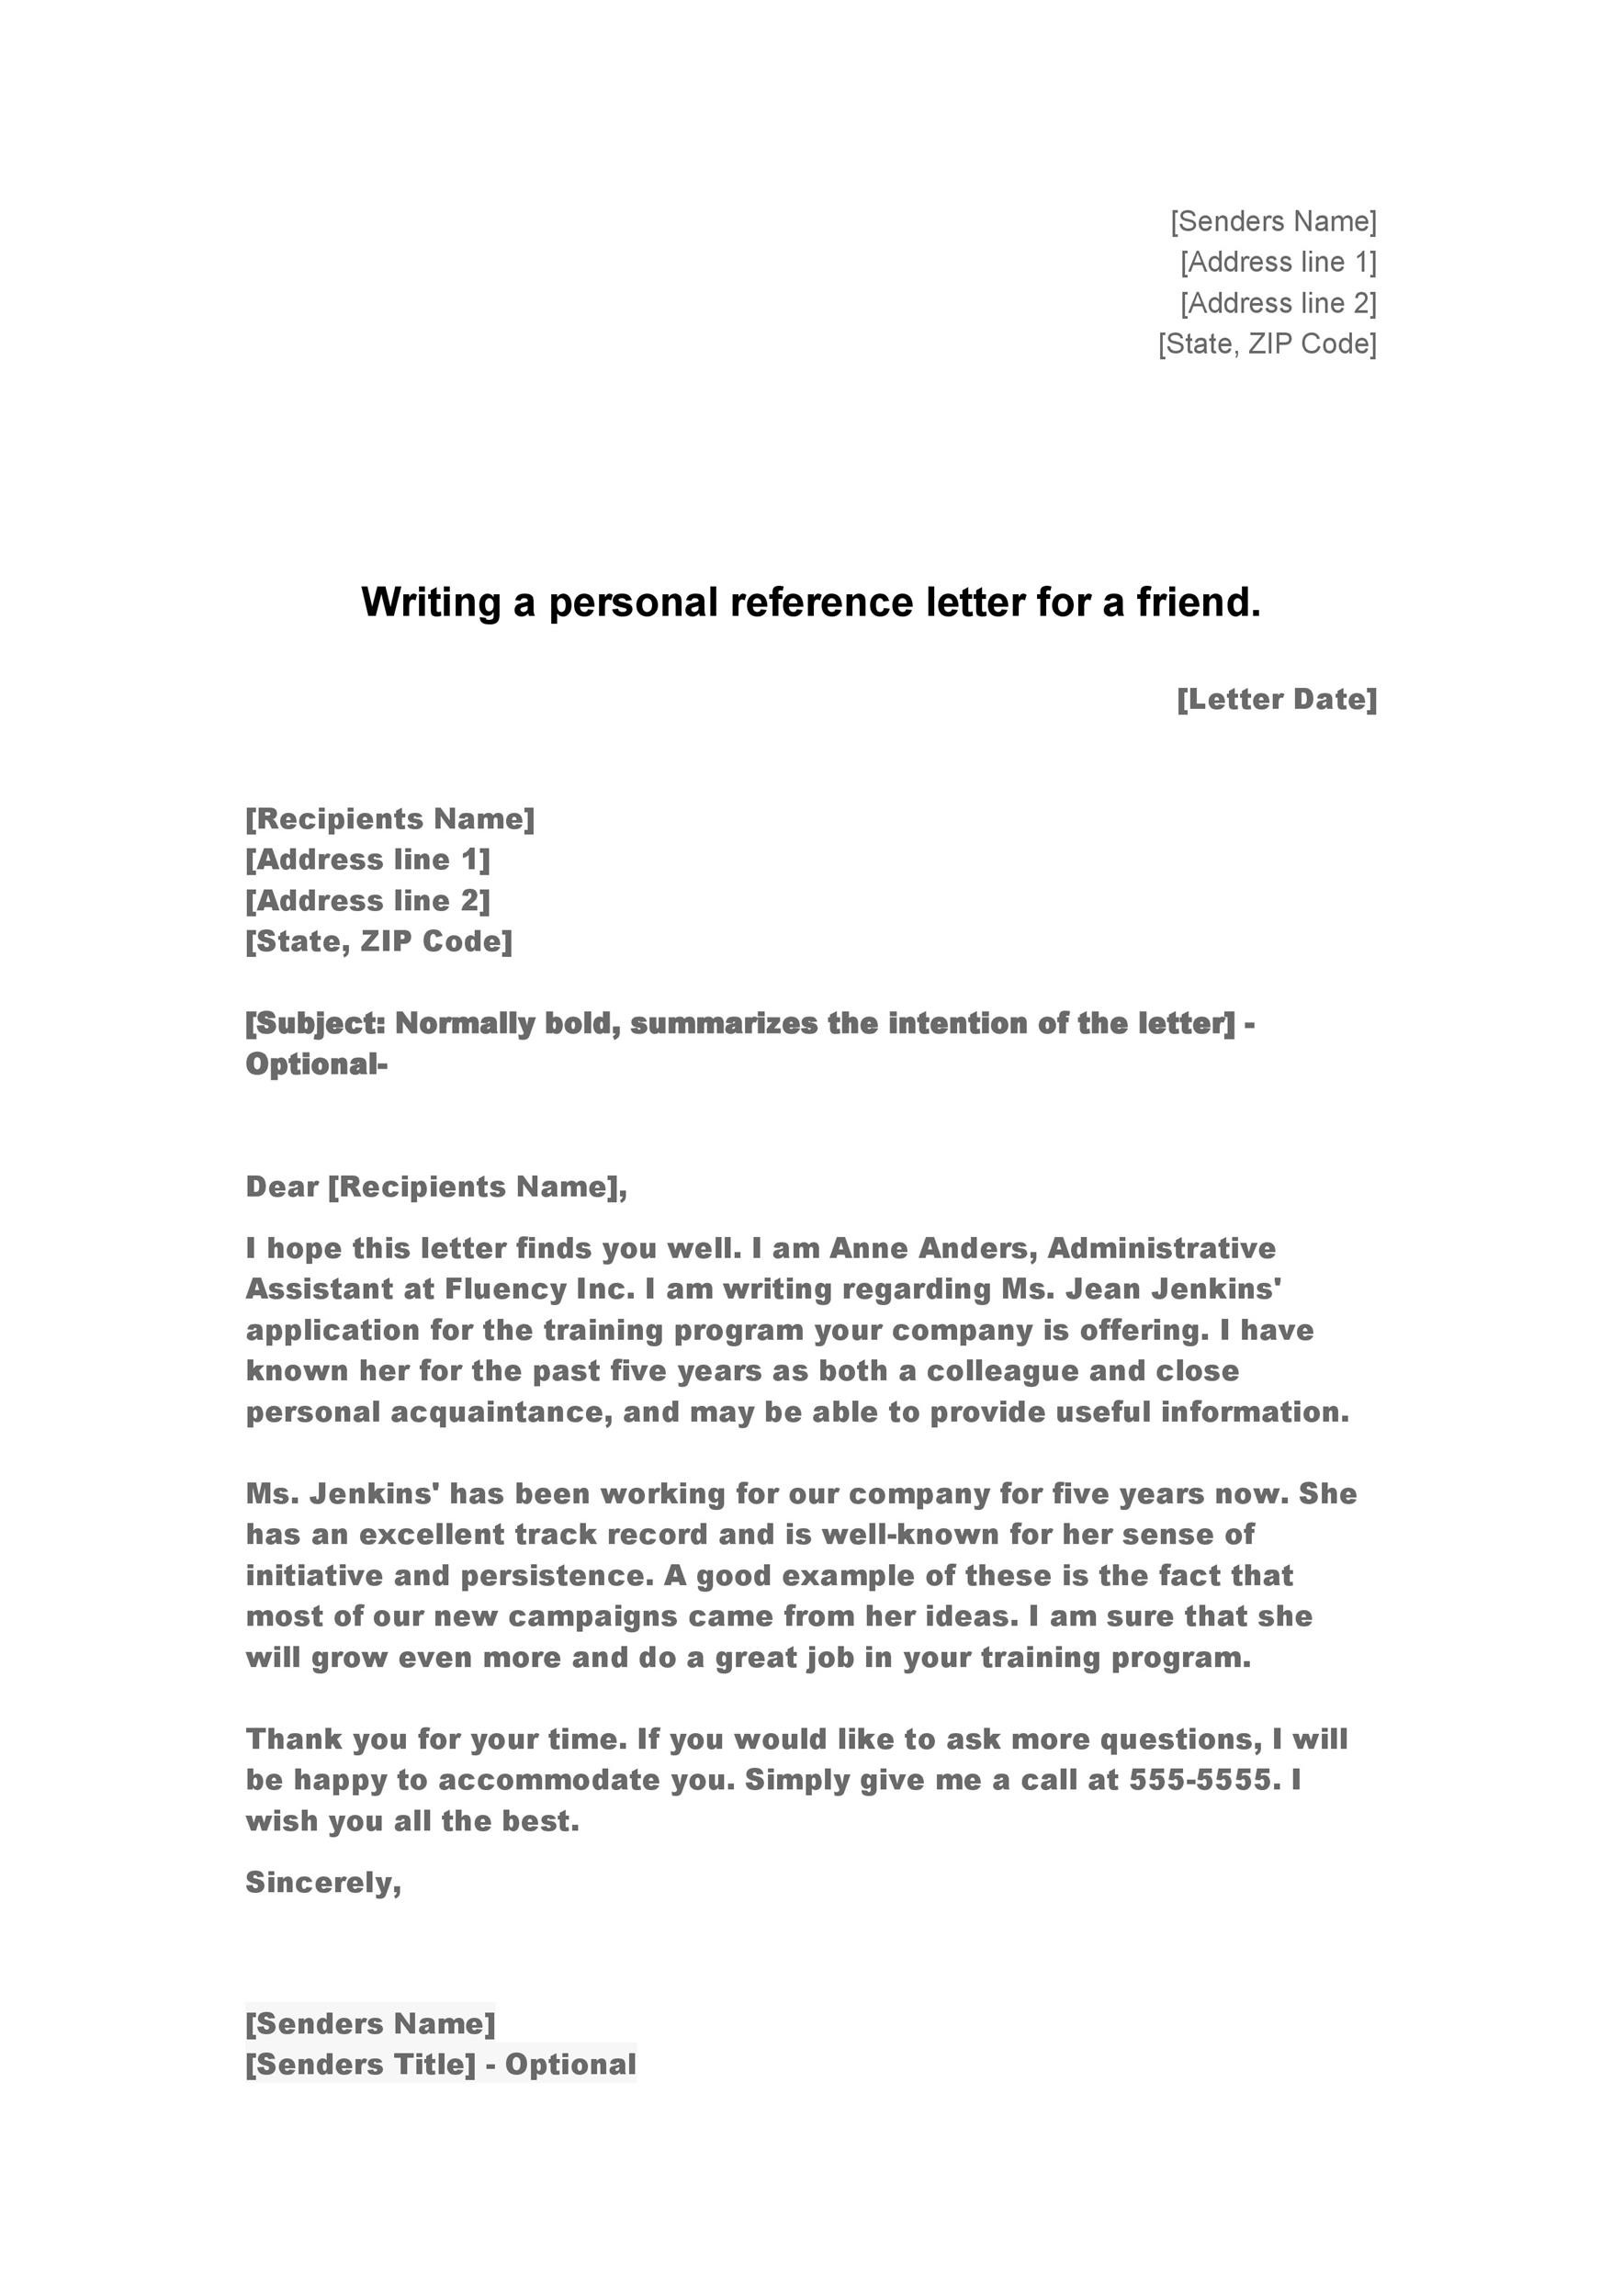 How to Write a Personal Reference Letter to a Judge for Someone on Trial